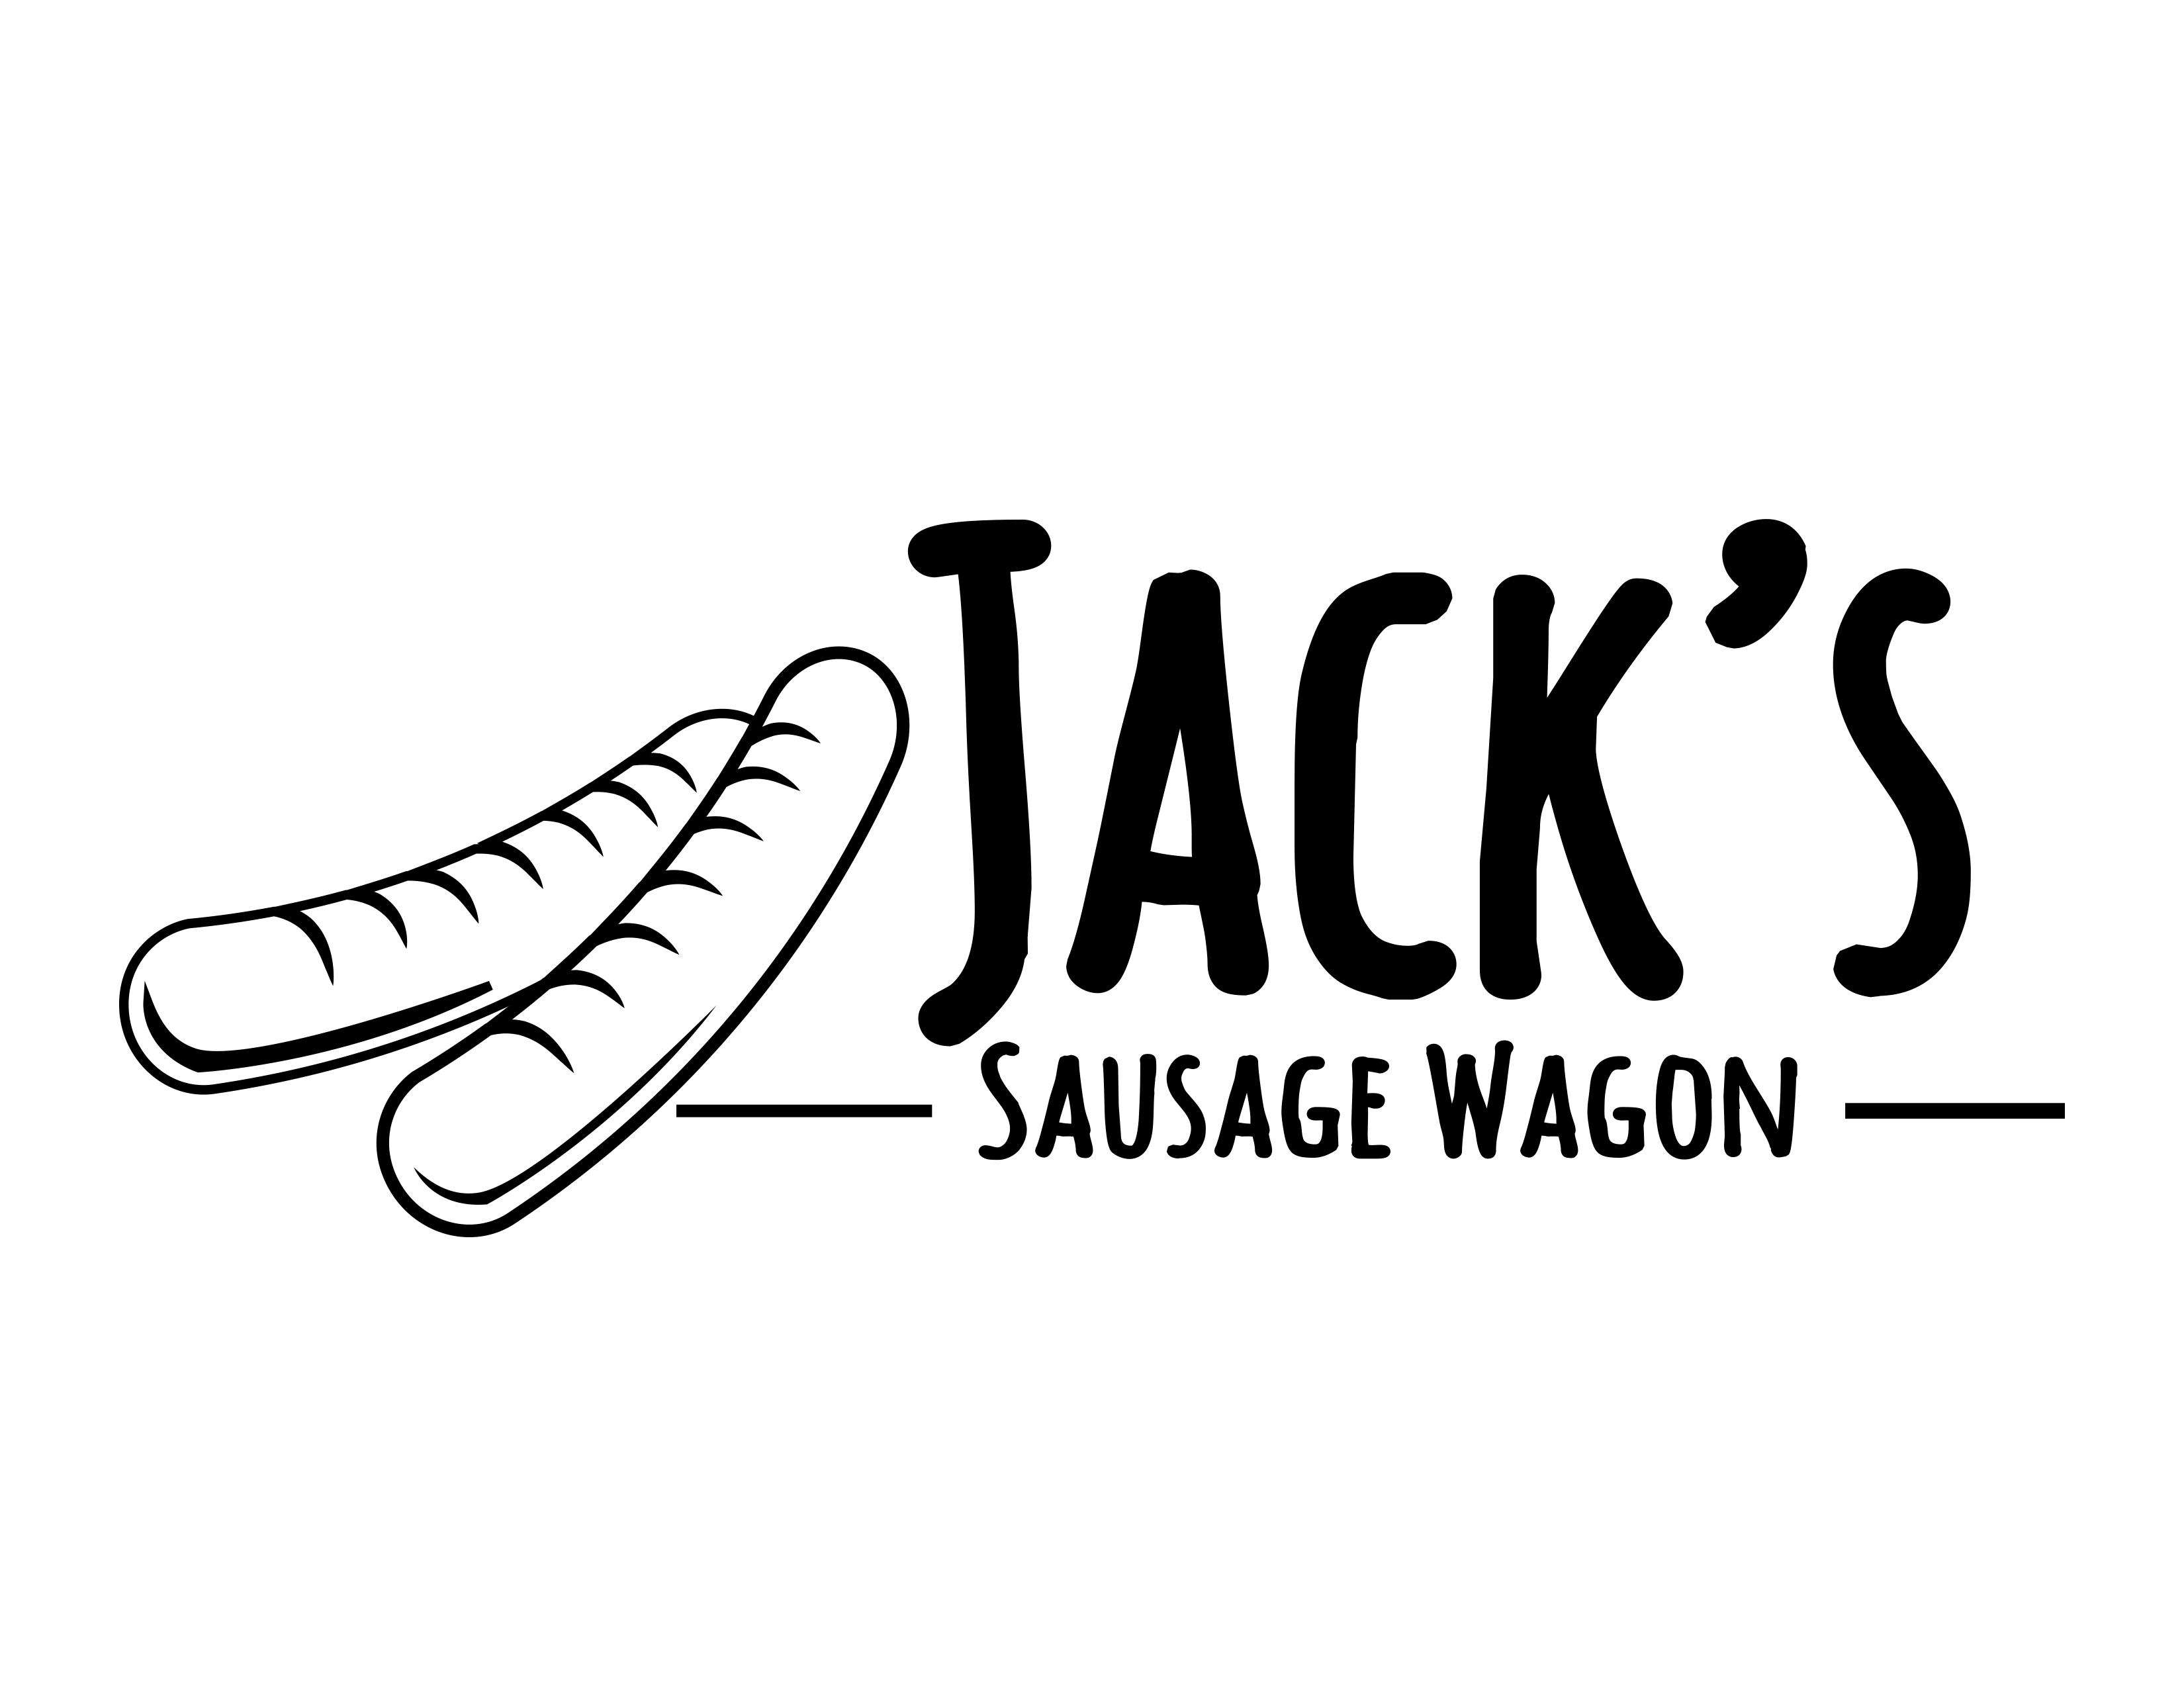 Jacks Sausage Wagon Franchise Logo